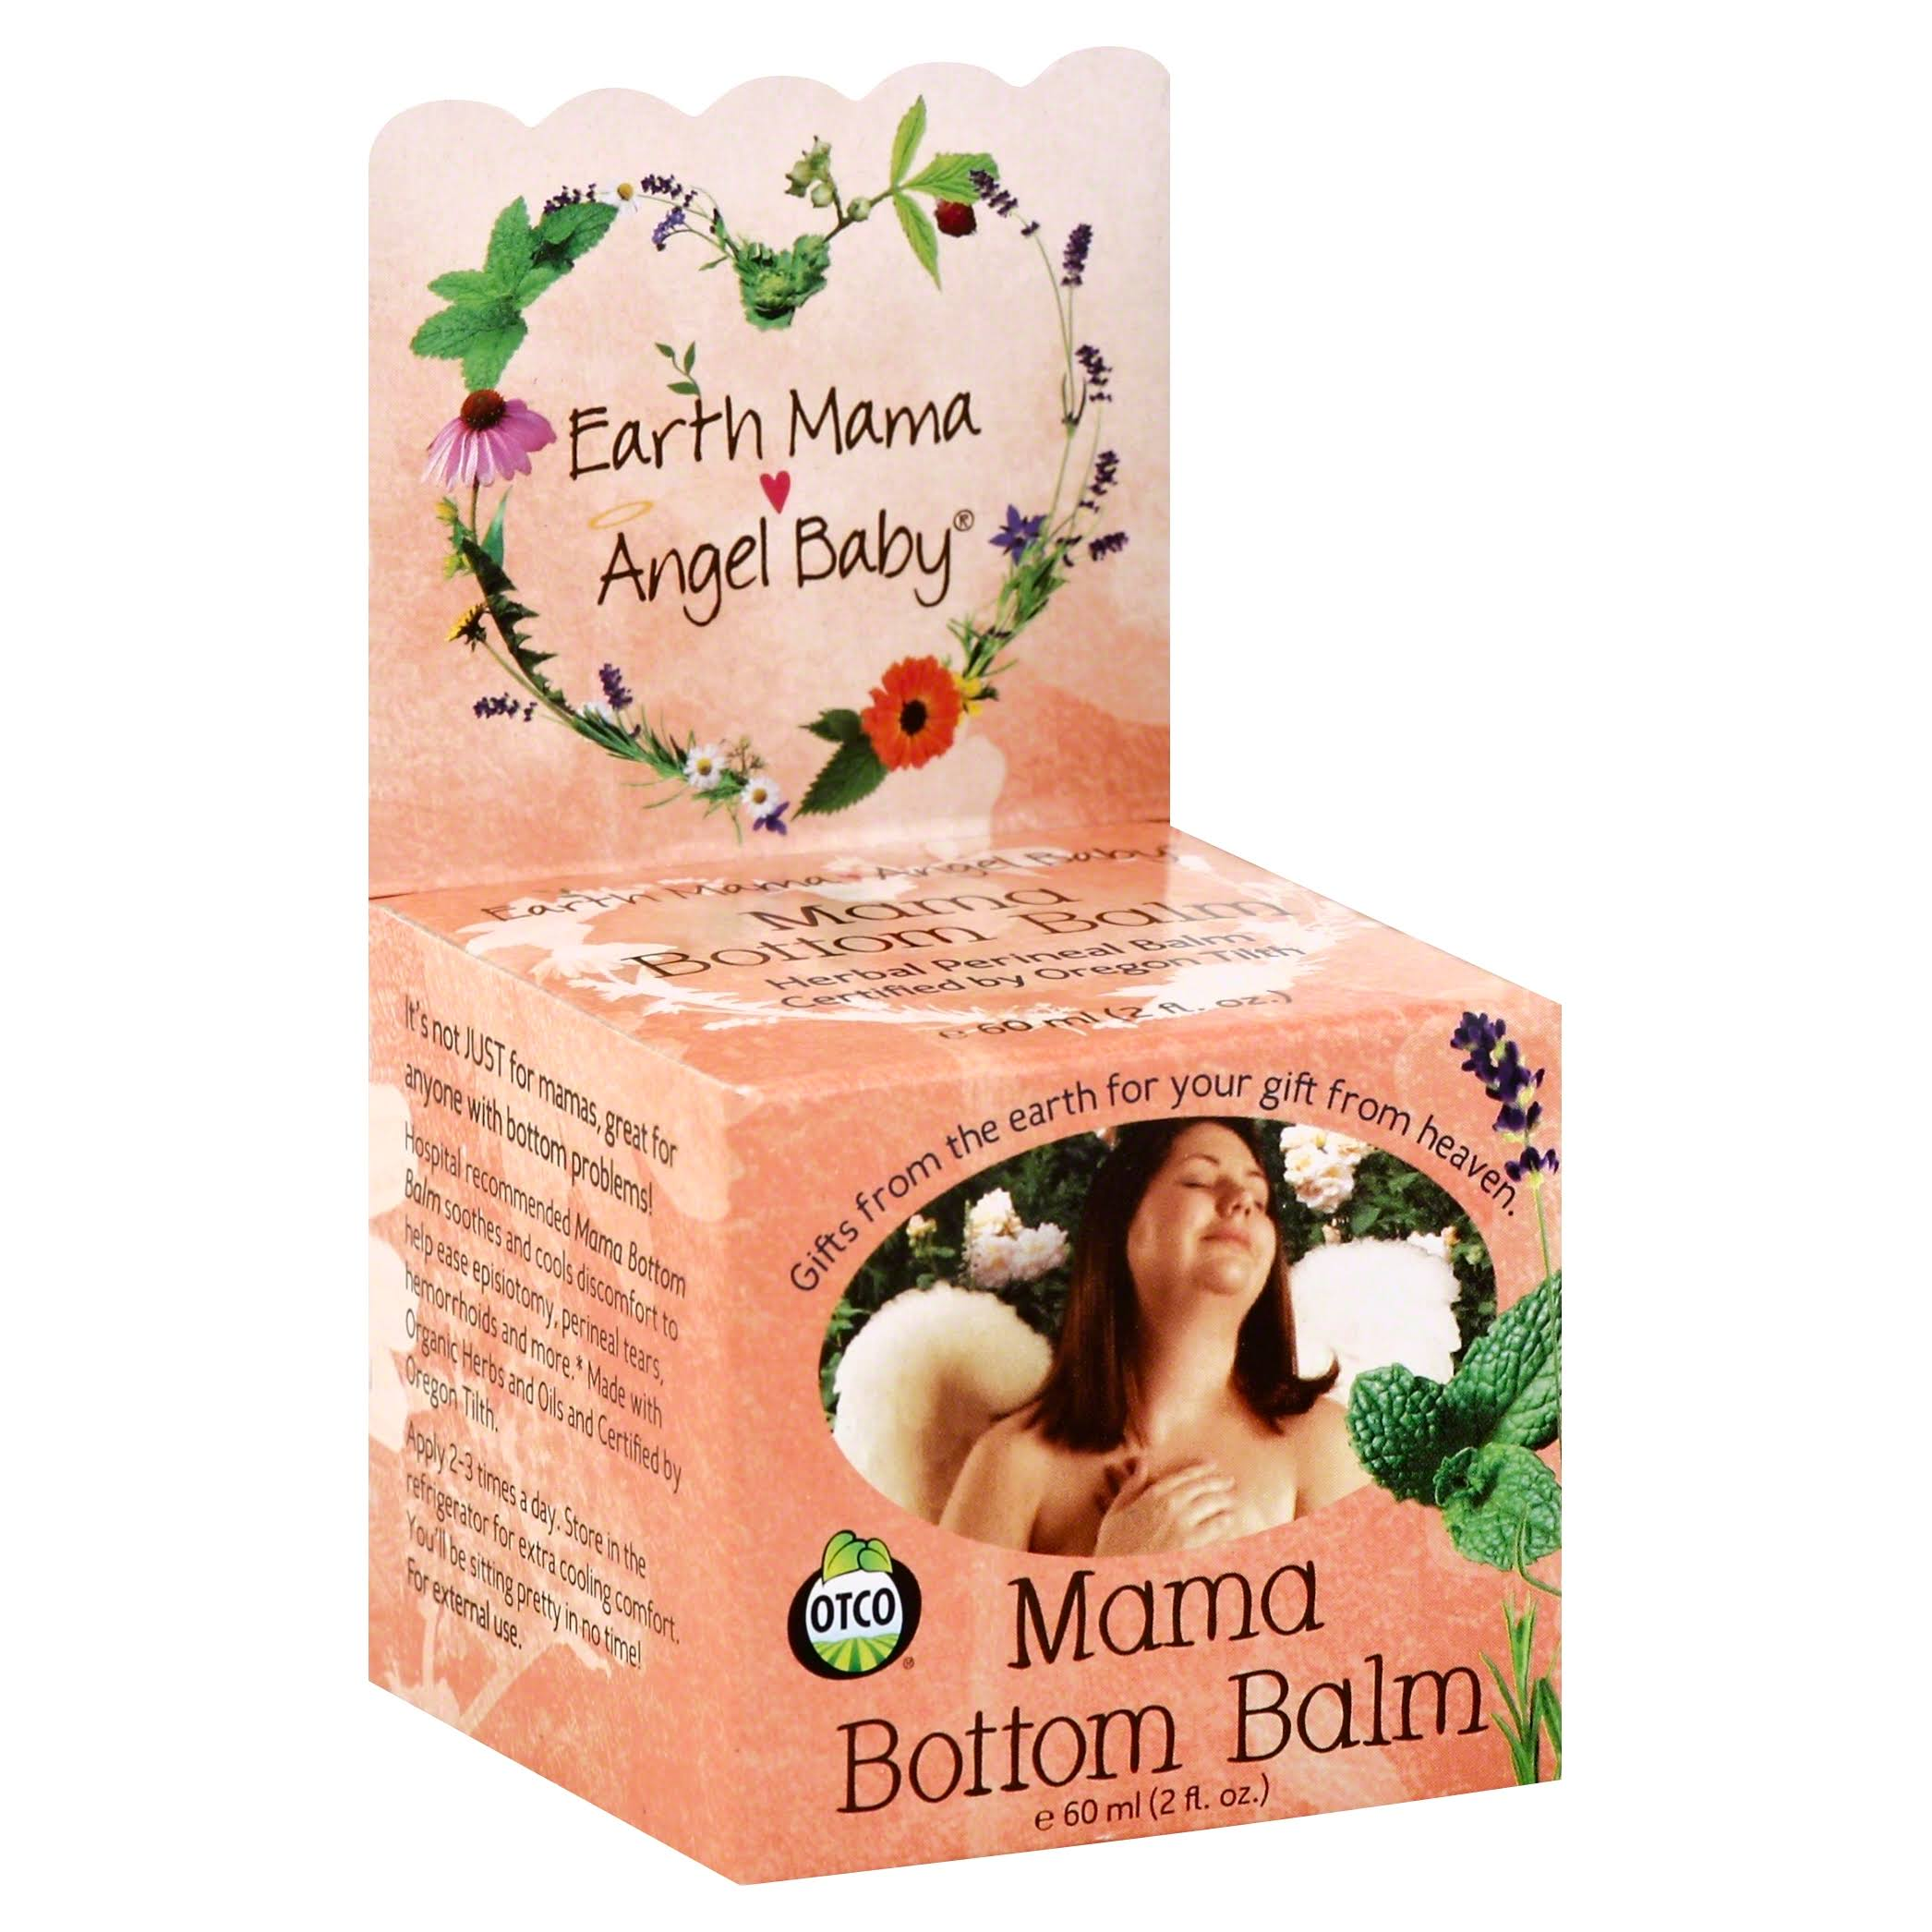 Earth Mama Angel Baby Mama Bottom Balm - 60ml